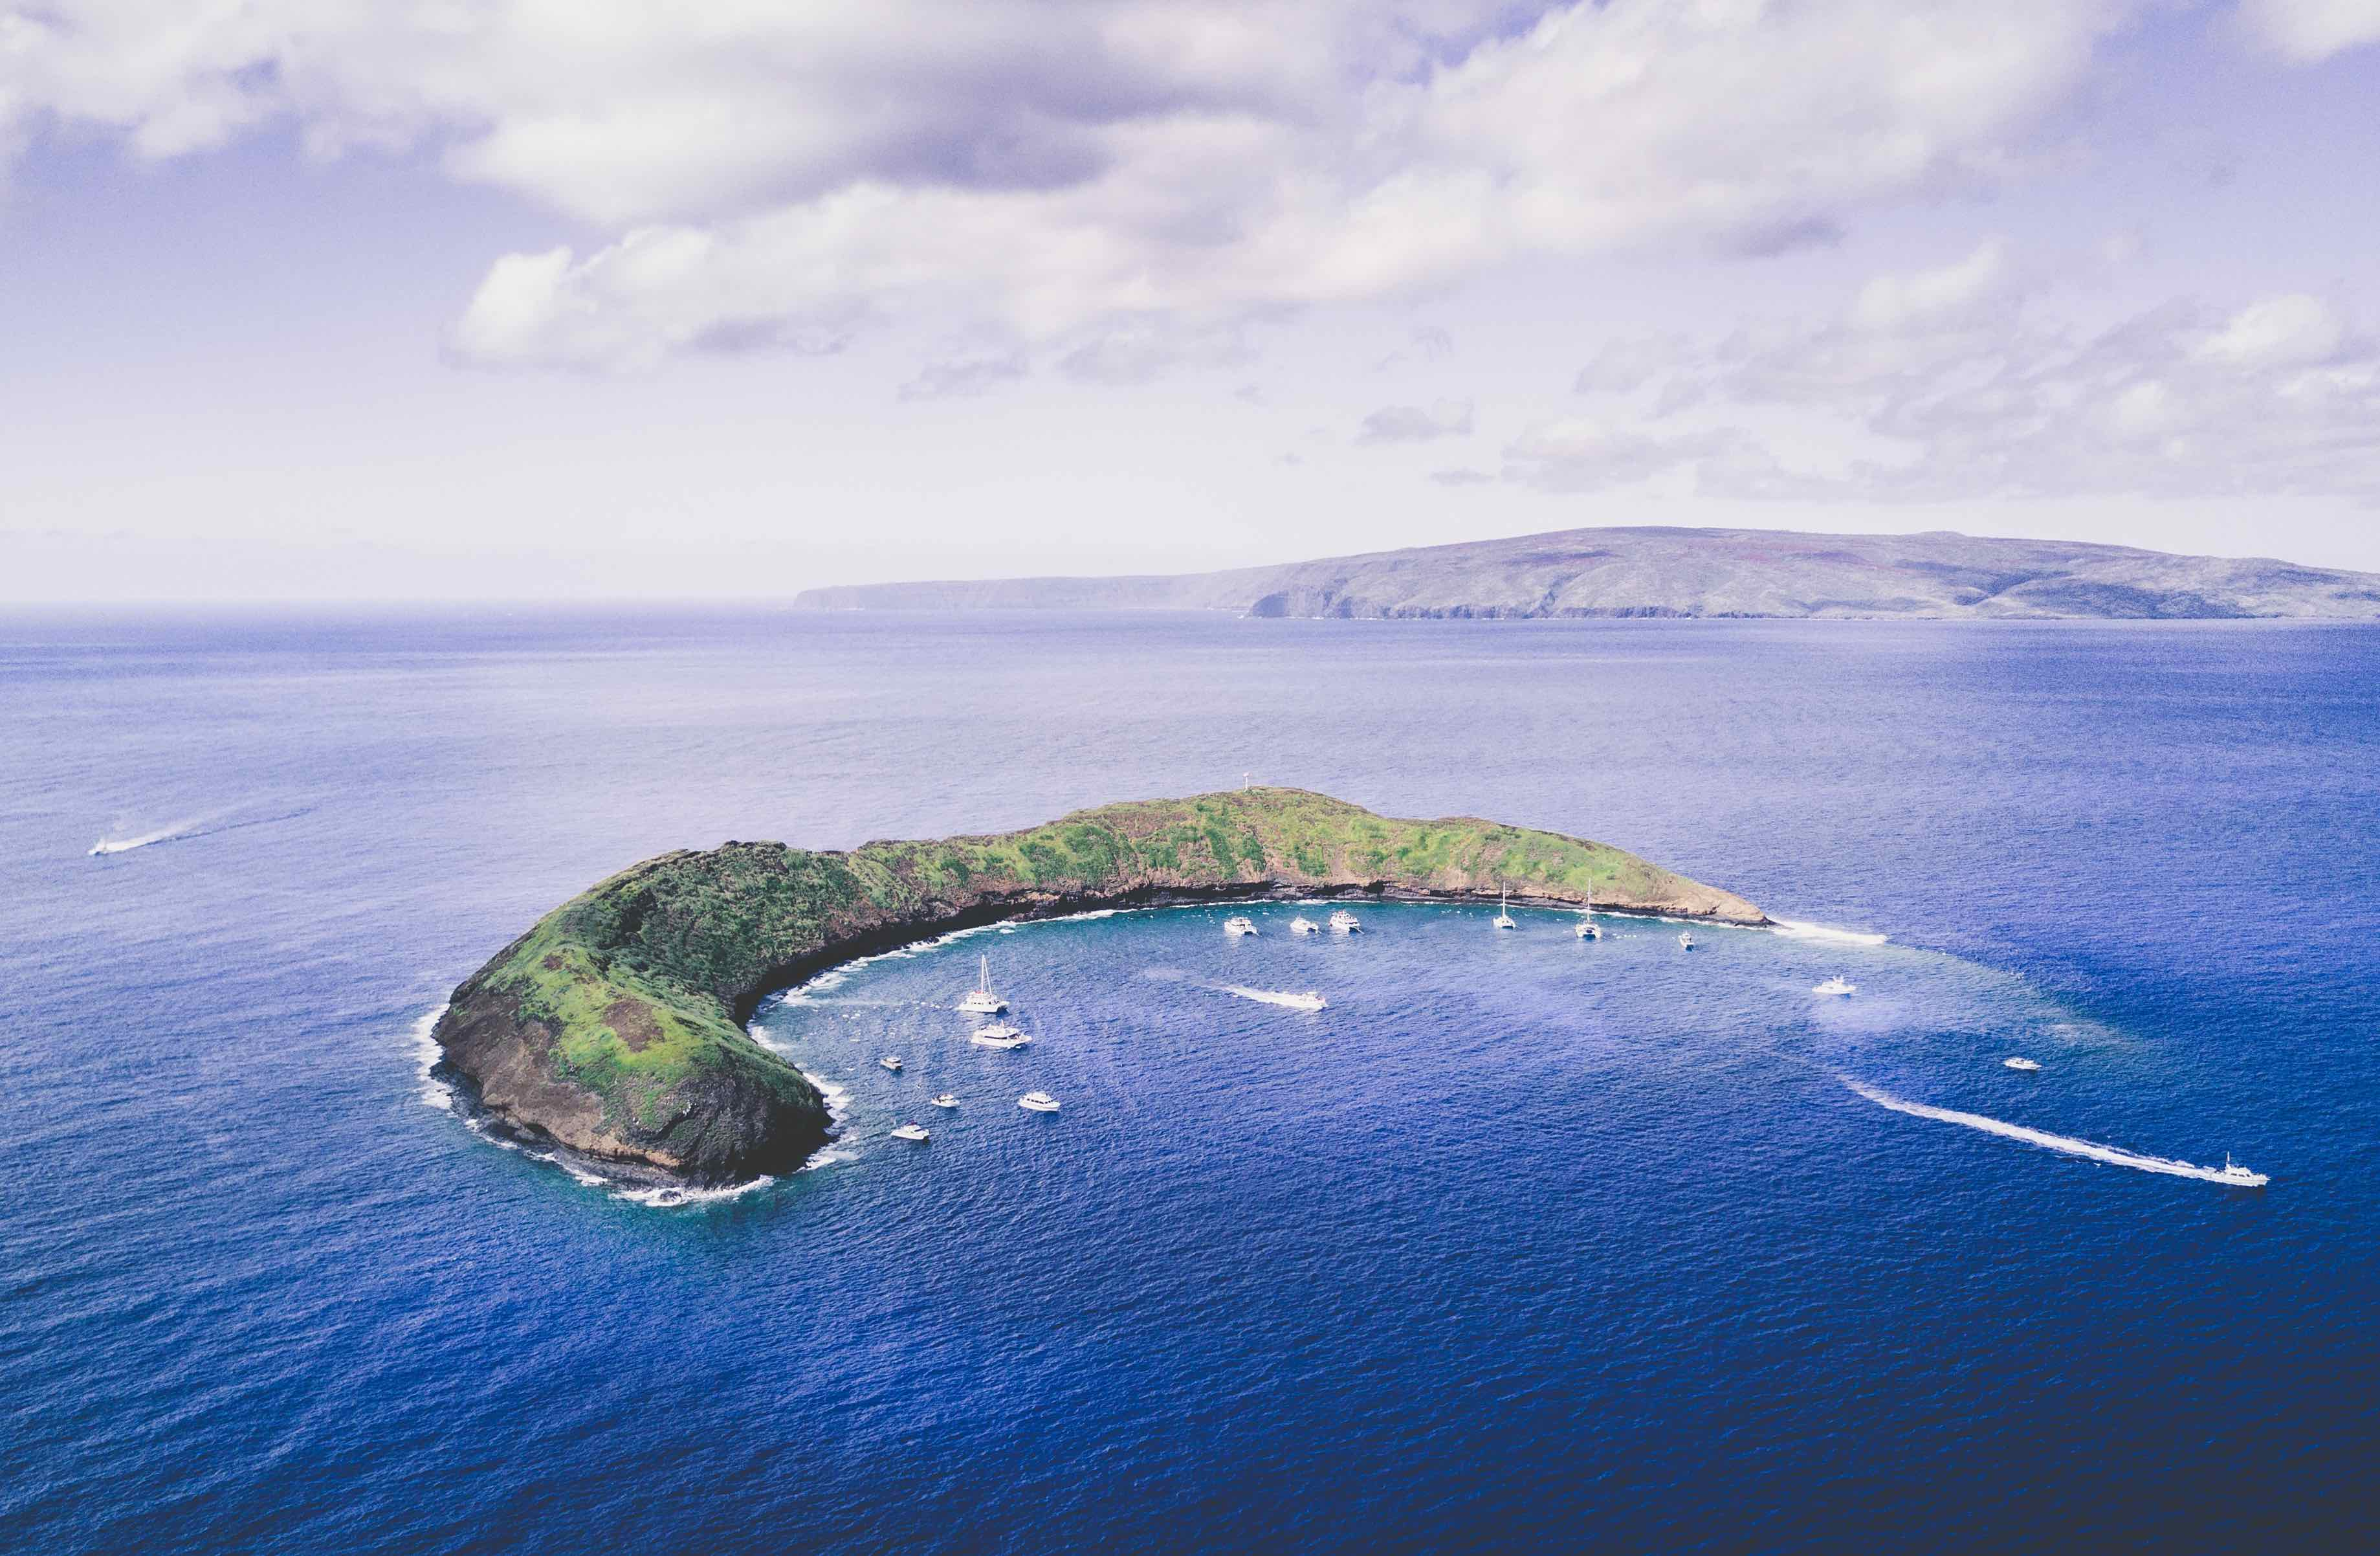 Conditions at Molokini Crater Improve During Coronavirus Pandemic